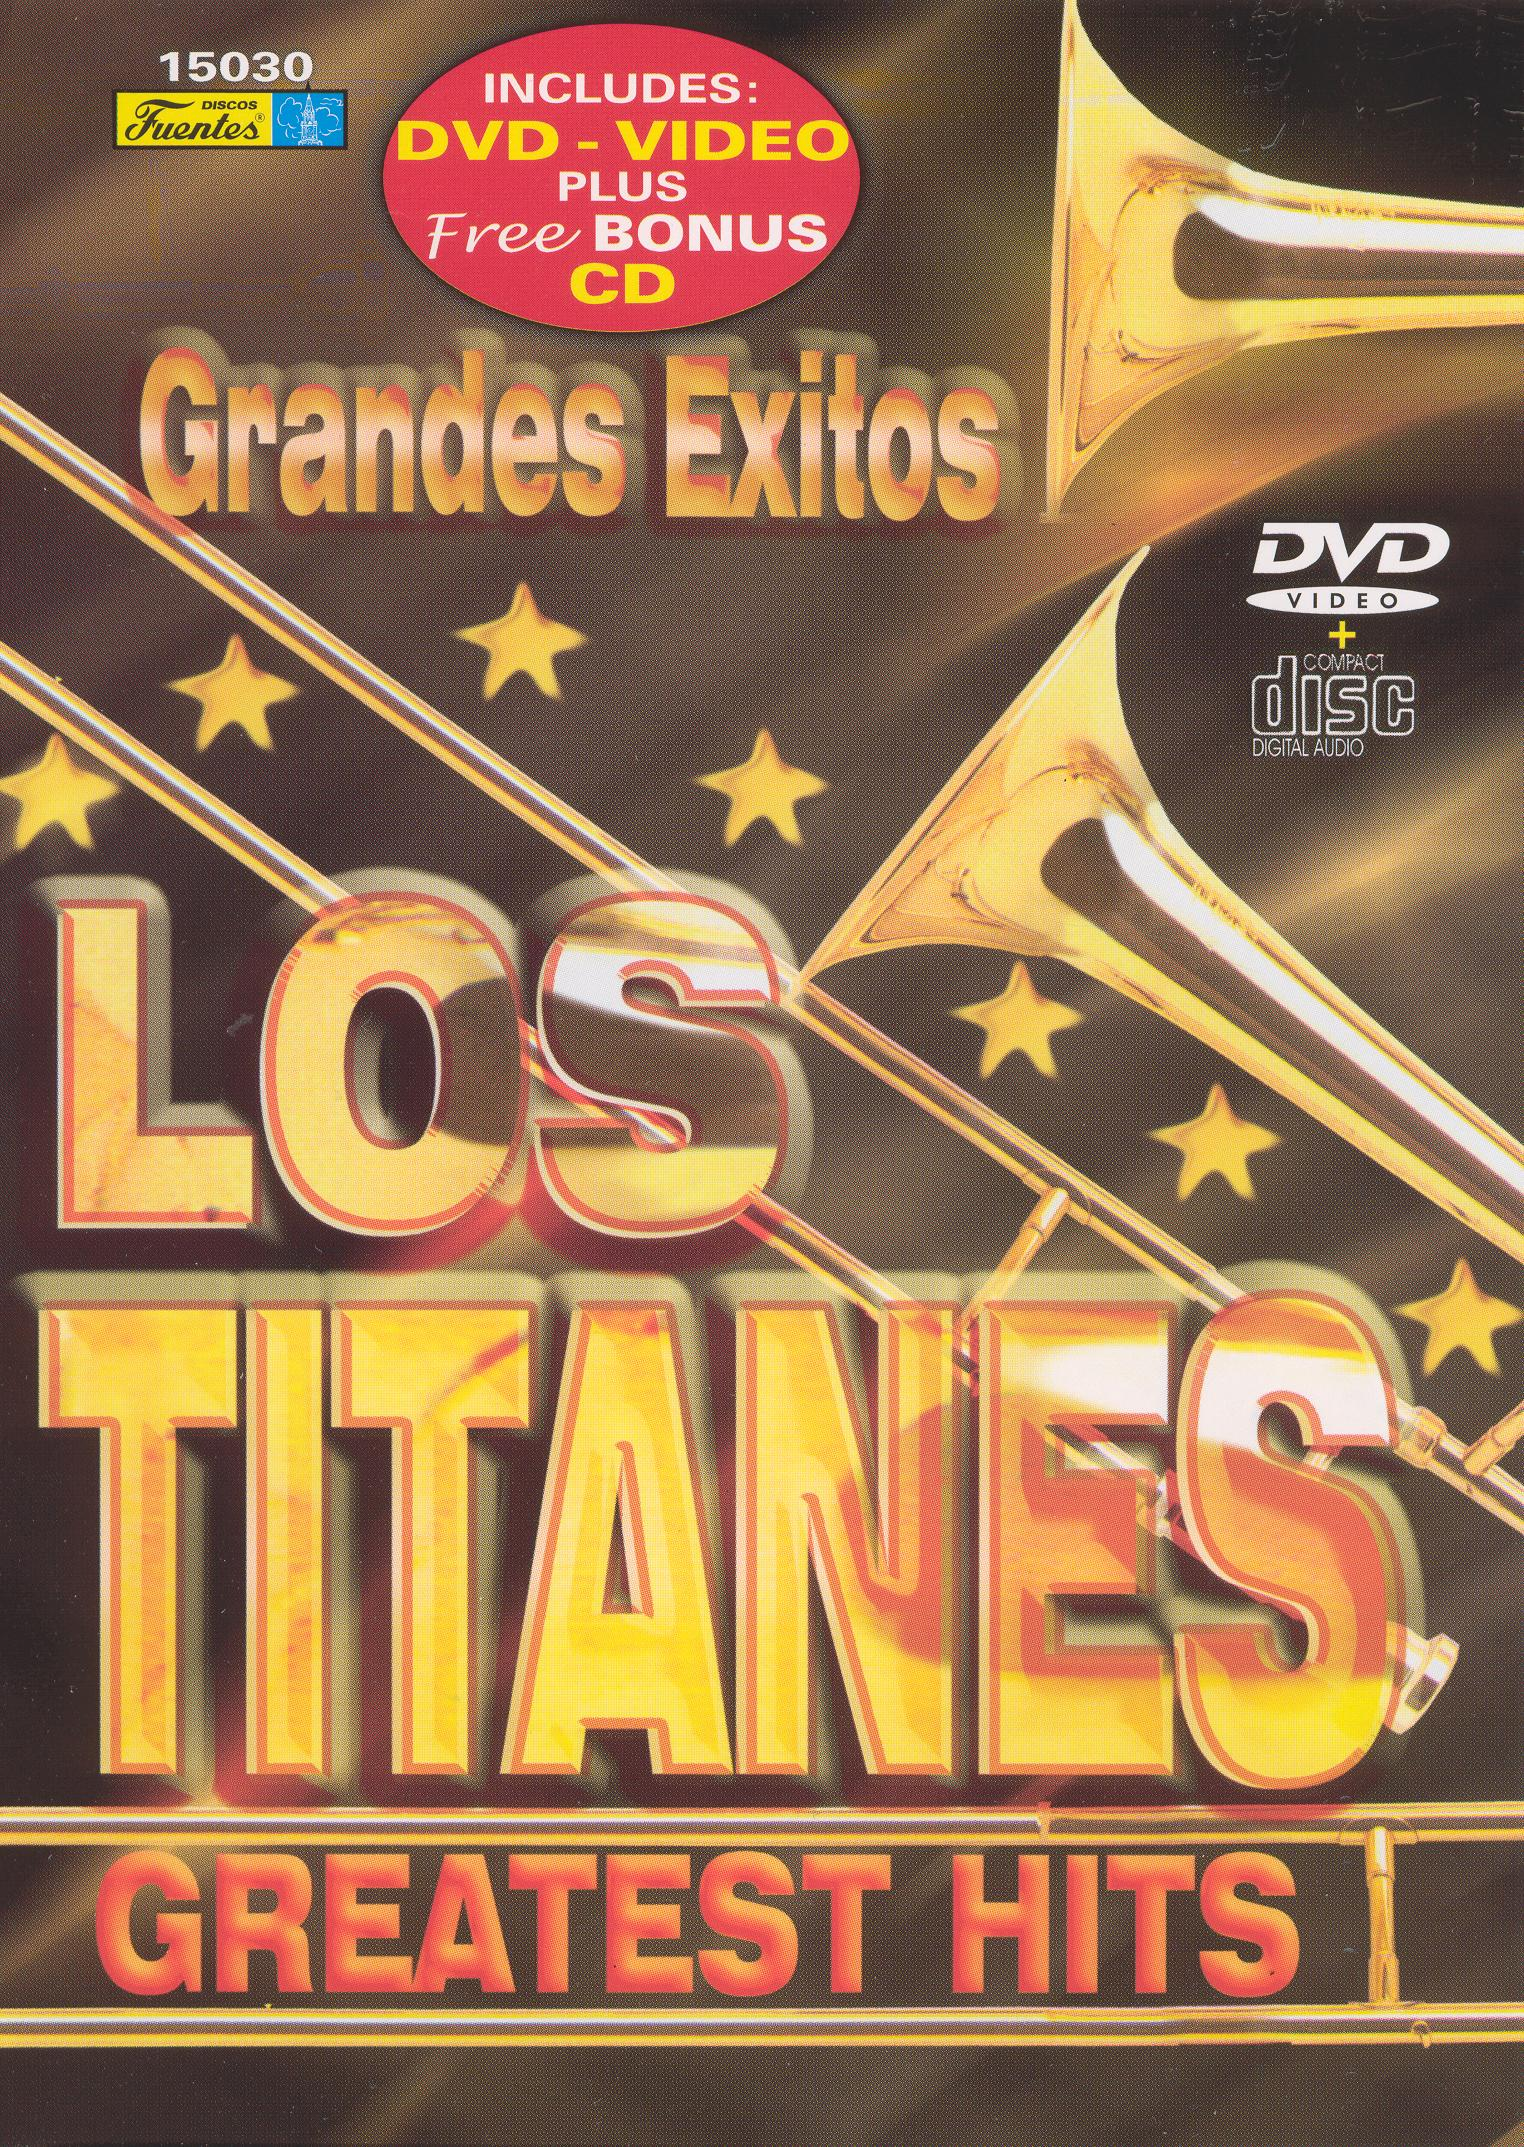 Los Titanes: Greatest Salsa Hits